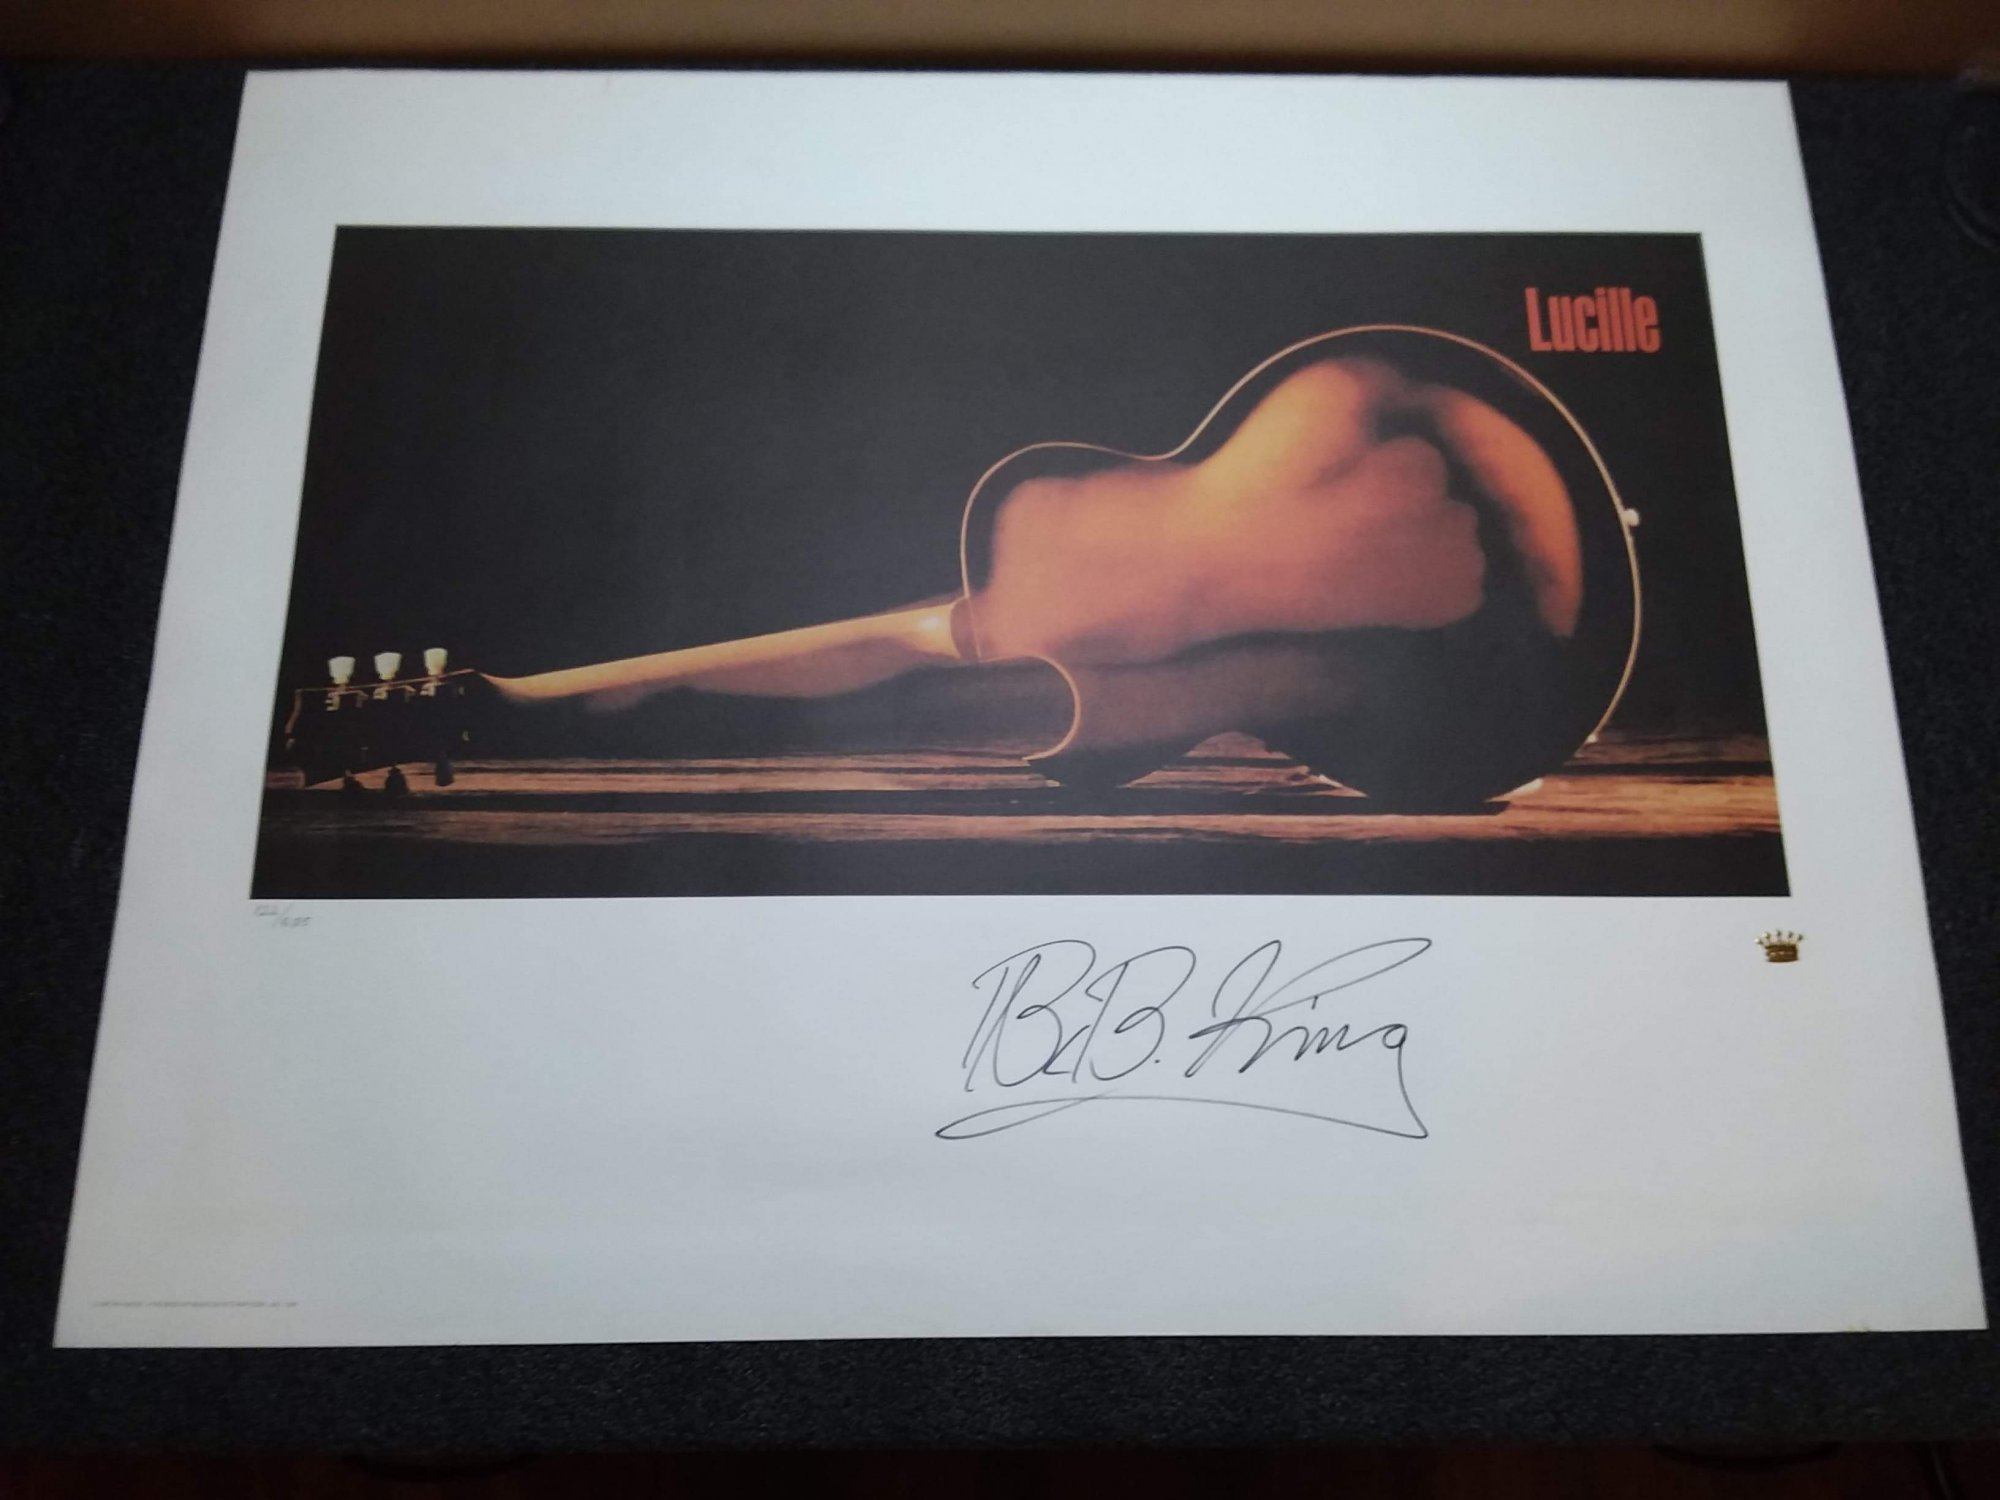 Collectible 1996 The B.B. King Collection LUCILLE Limited Edition Lithographic Print #122 of 685